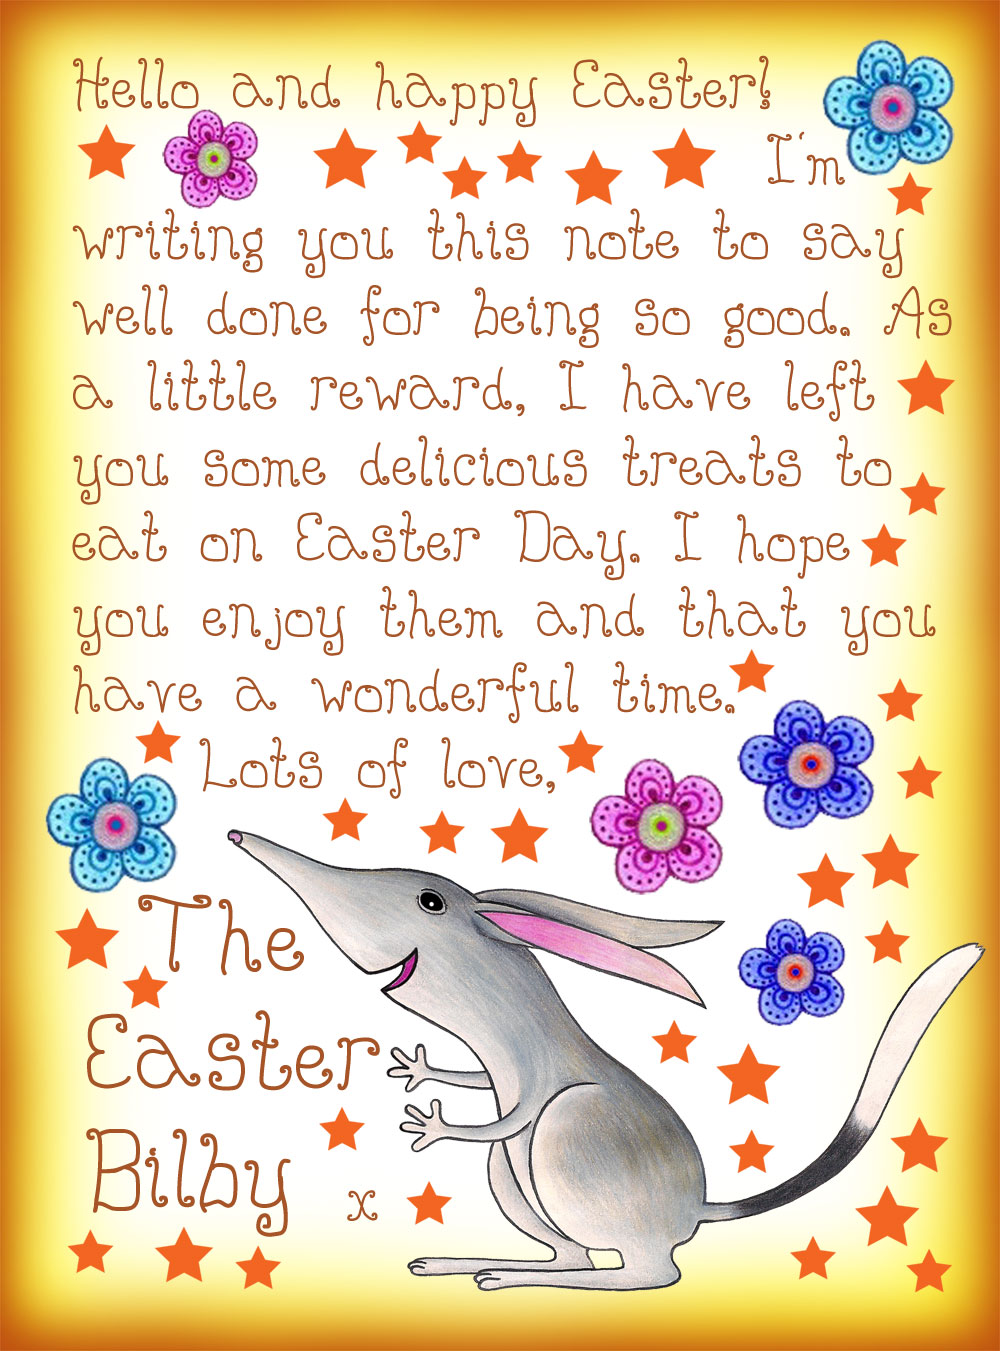 Free printable note from the Easter Bilby